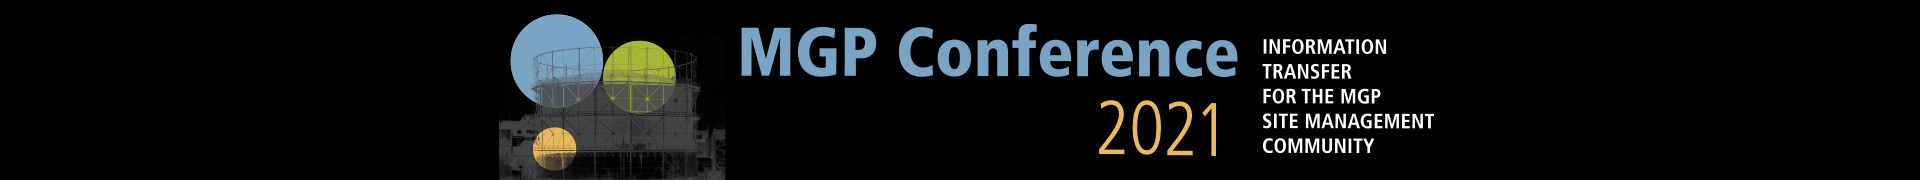 MGP Conference 2021 Event Banner